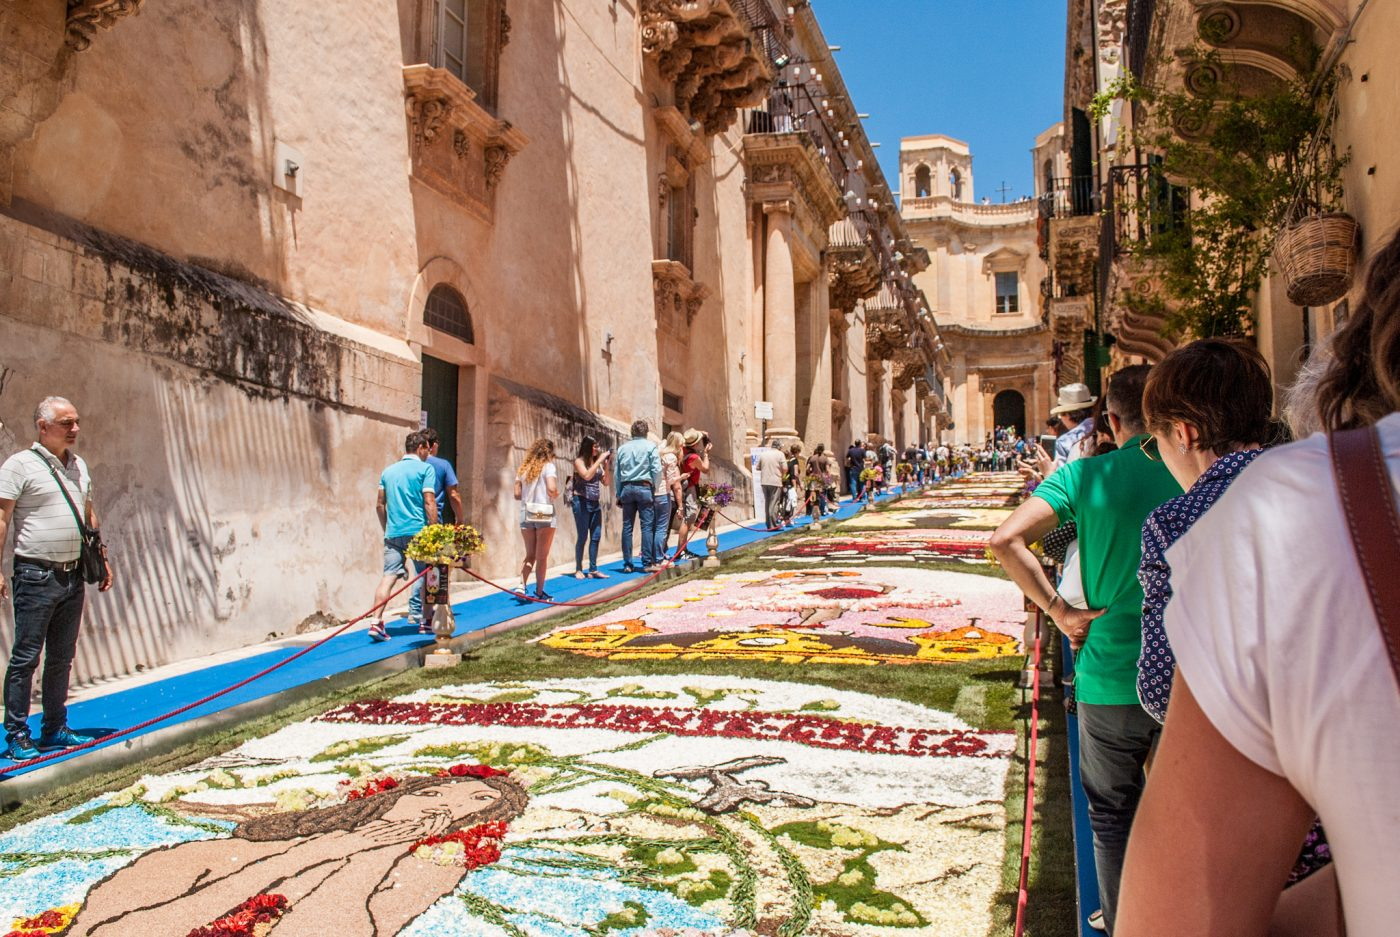 Infiorata Festival is among the things to do in Sicily